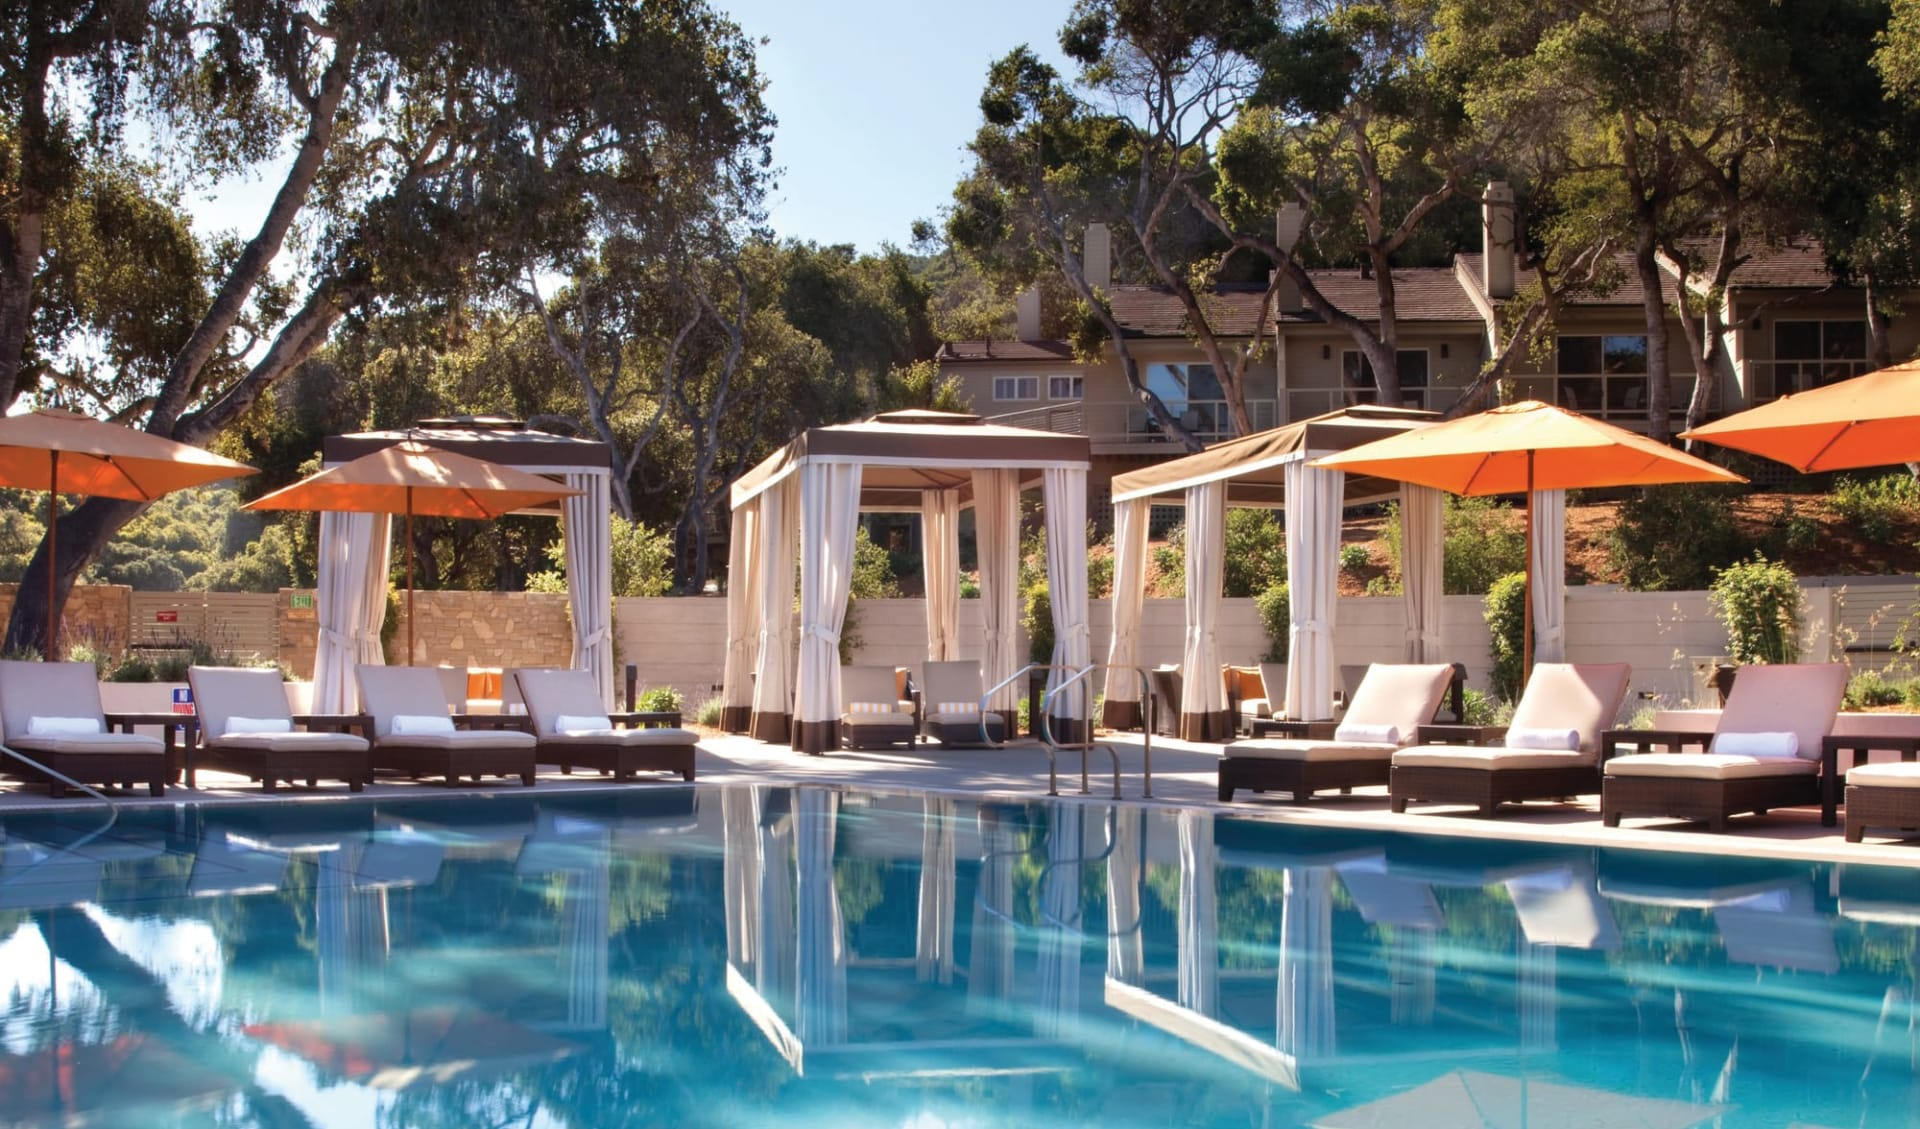 Carmel Valley Ranch: Exterior_Carmel Valley Ranch_Poollandschaft_Bonotel